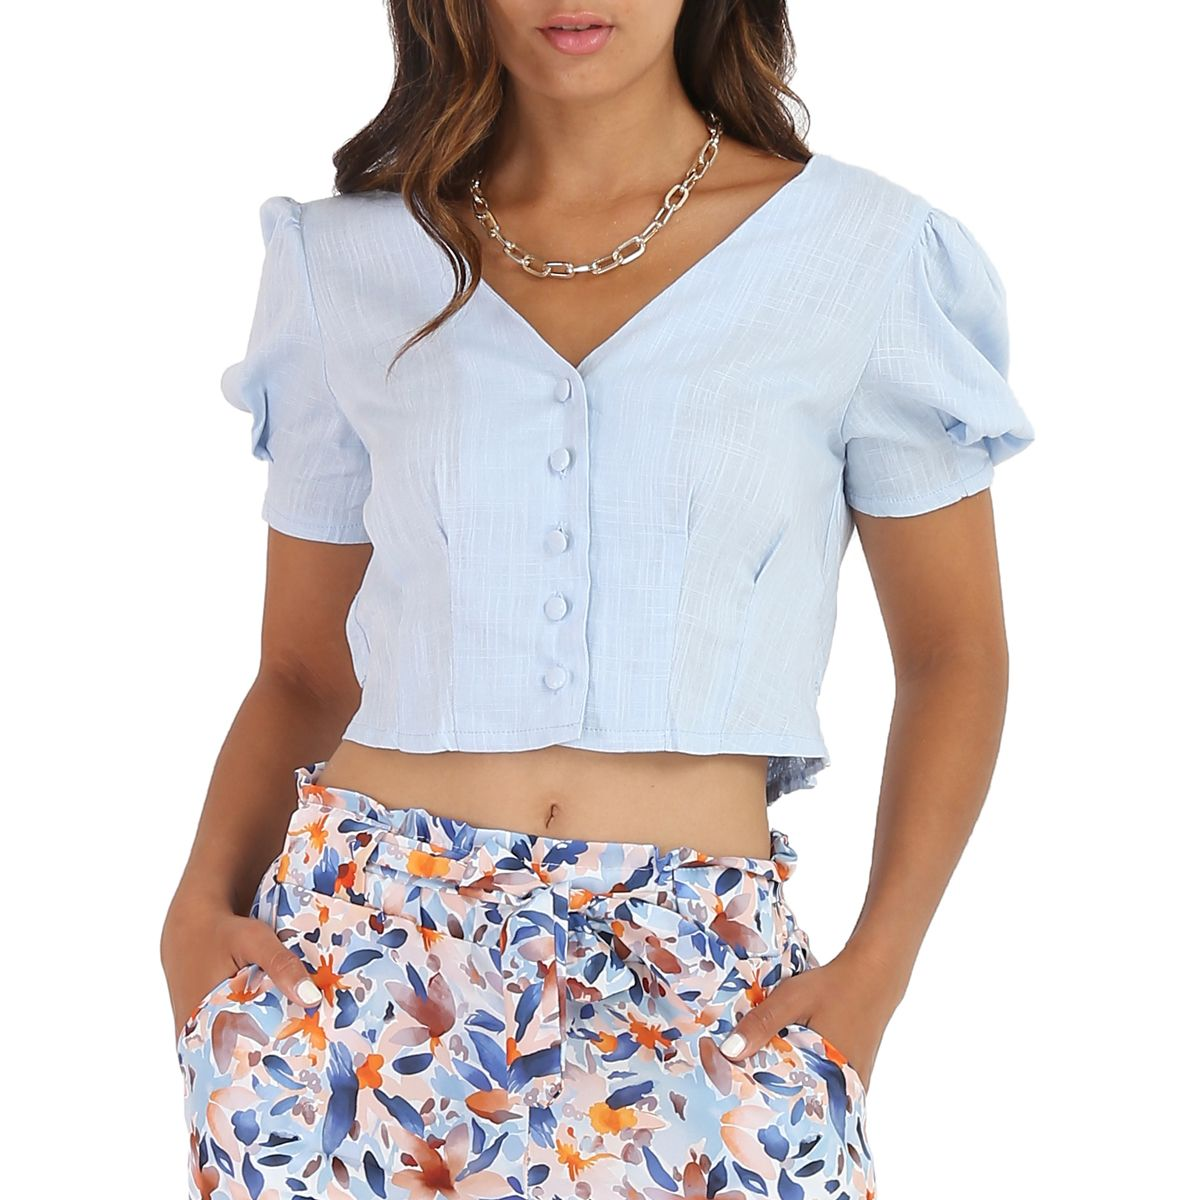 Chemisier cropped bleu style lin